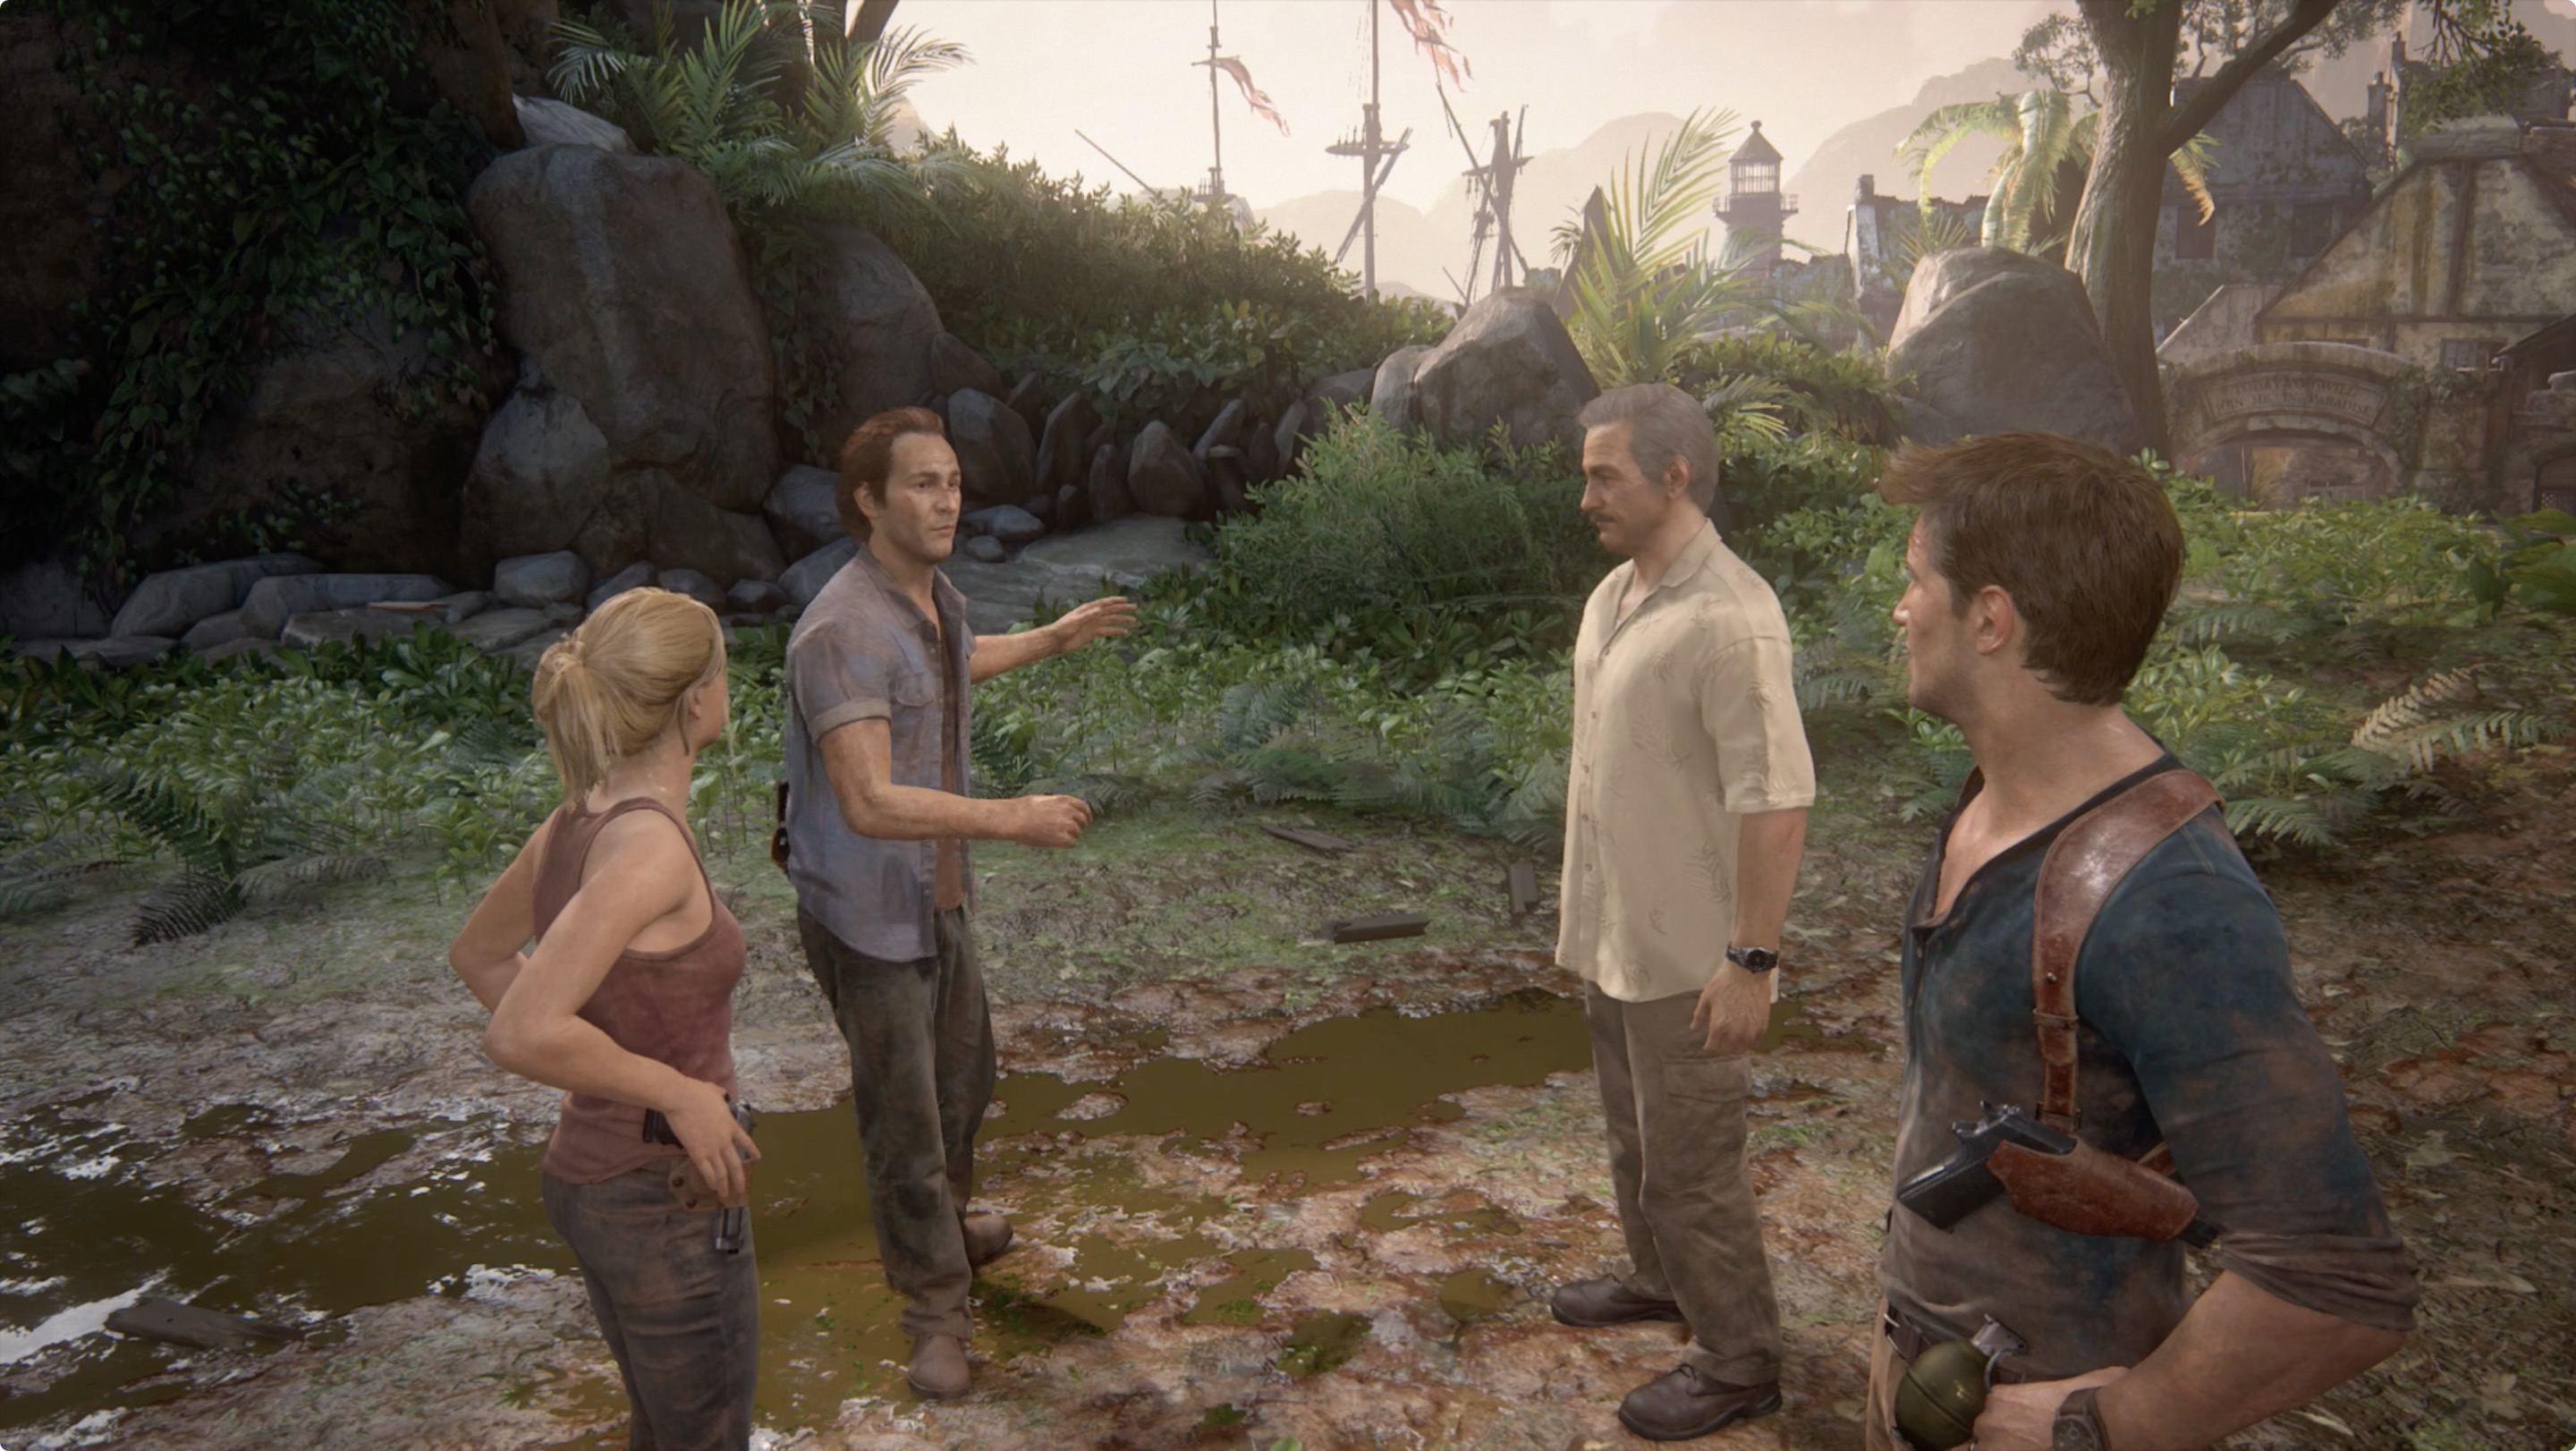 Uncharted 4: A Thief's End 'No Escape' treasures and collectibles locations guide